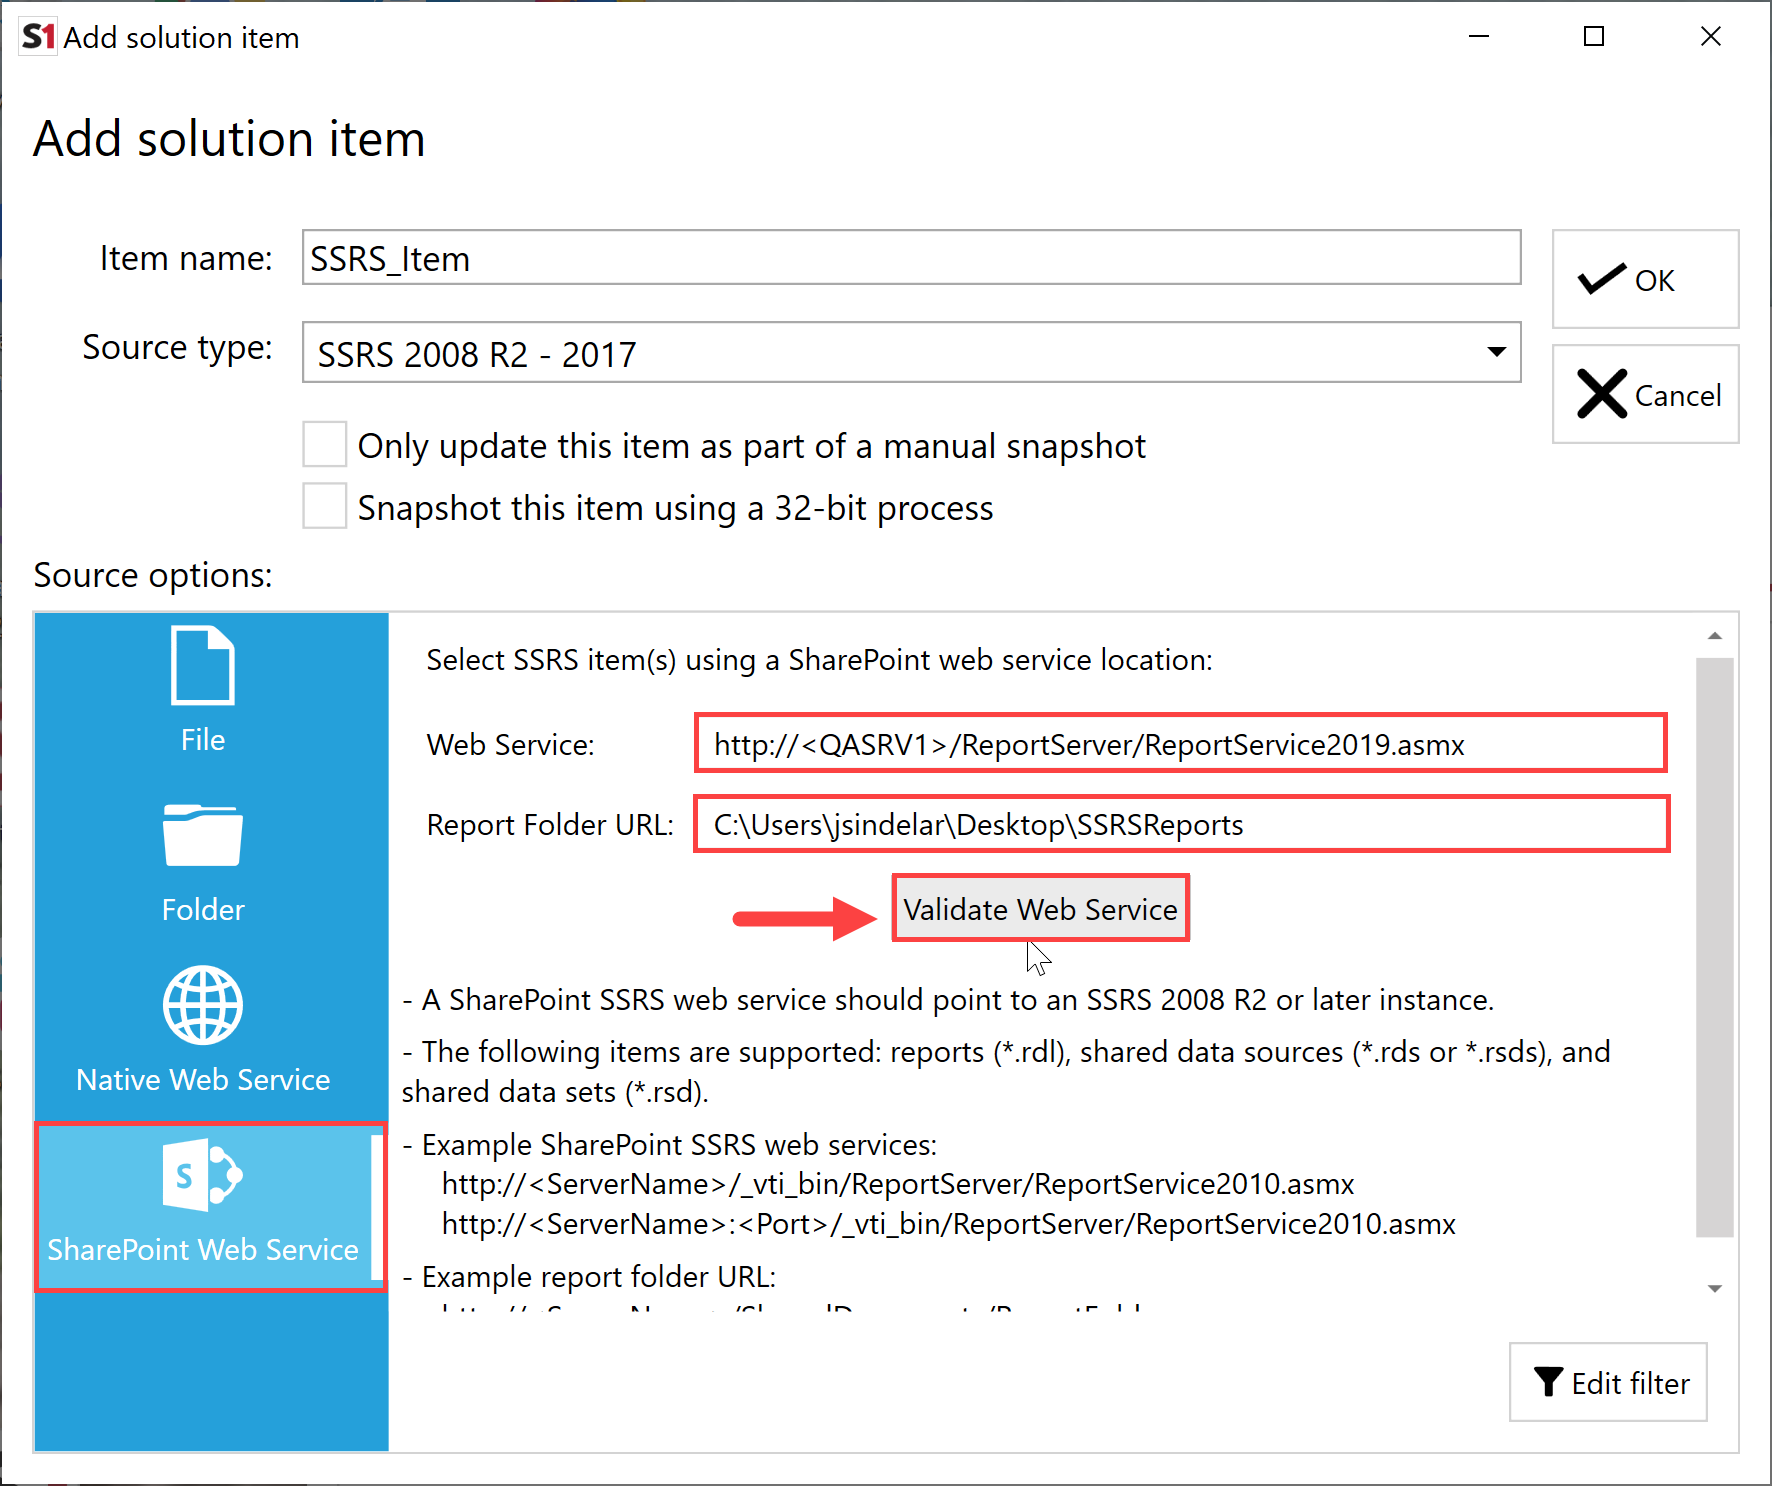 SentryOne Document Add Solution Item SSRS SharePoint Web Service